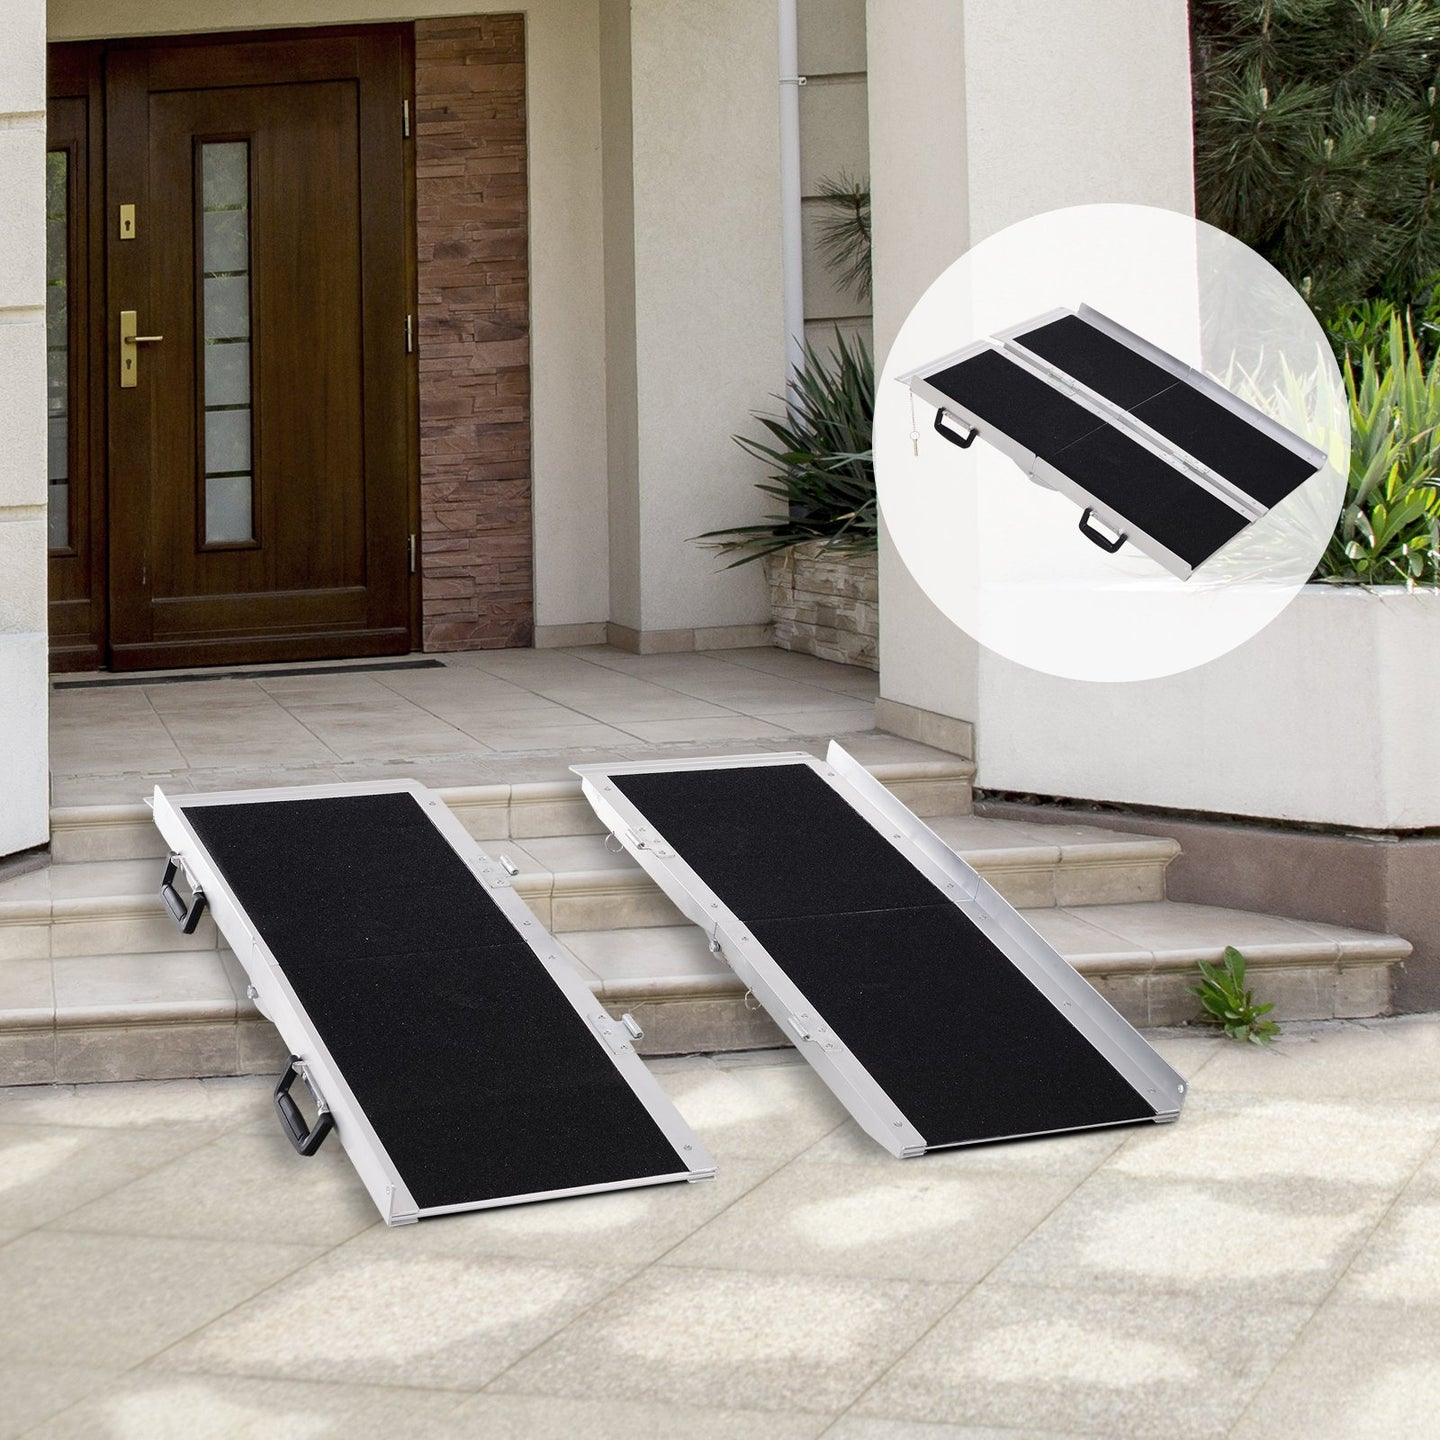 HOMCOM Aluminium Double Panel Wheelchair Ramp w/ Handle Black